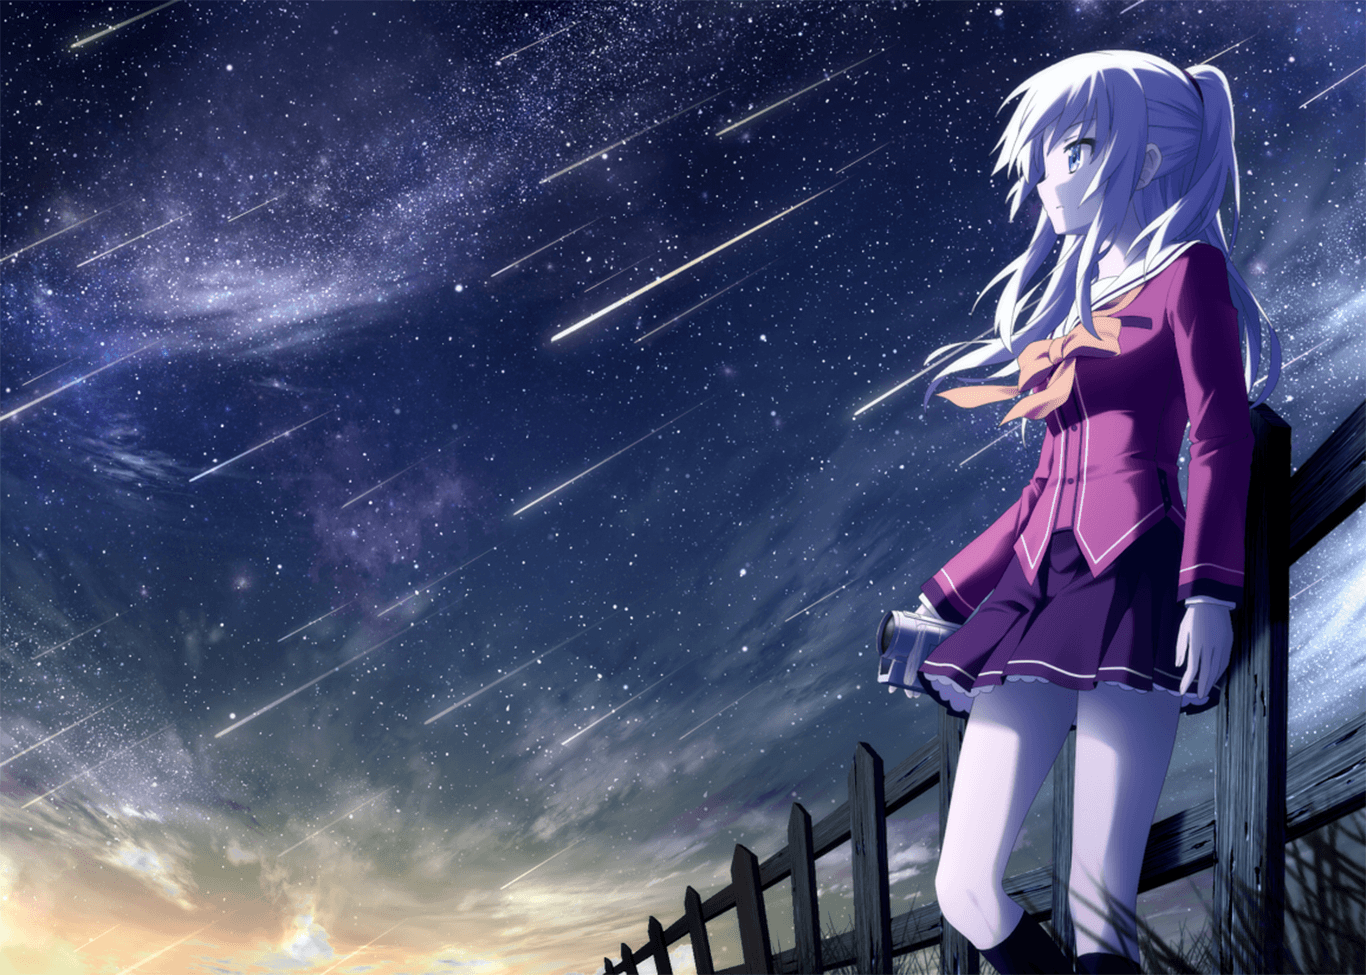 Anime 4k Wallpapers Top Free Anime 4k Backgrounds Wallpaperaccess